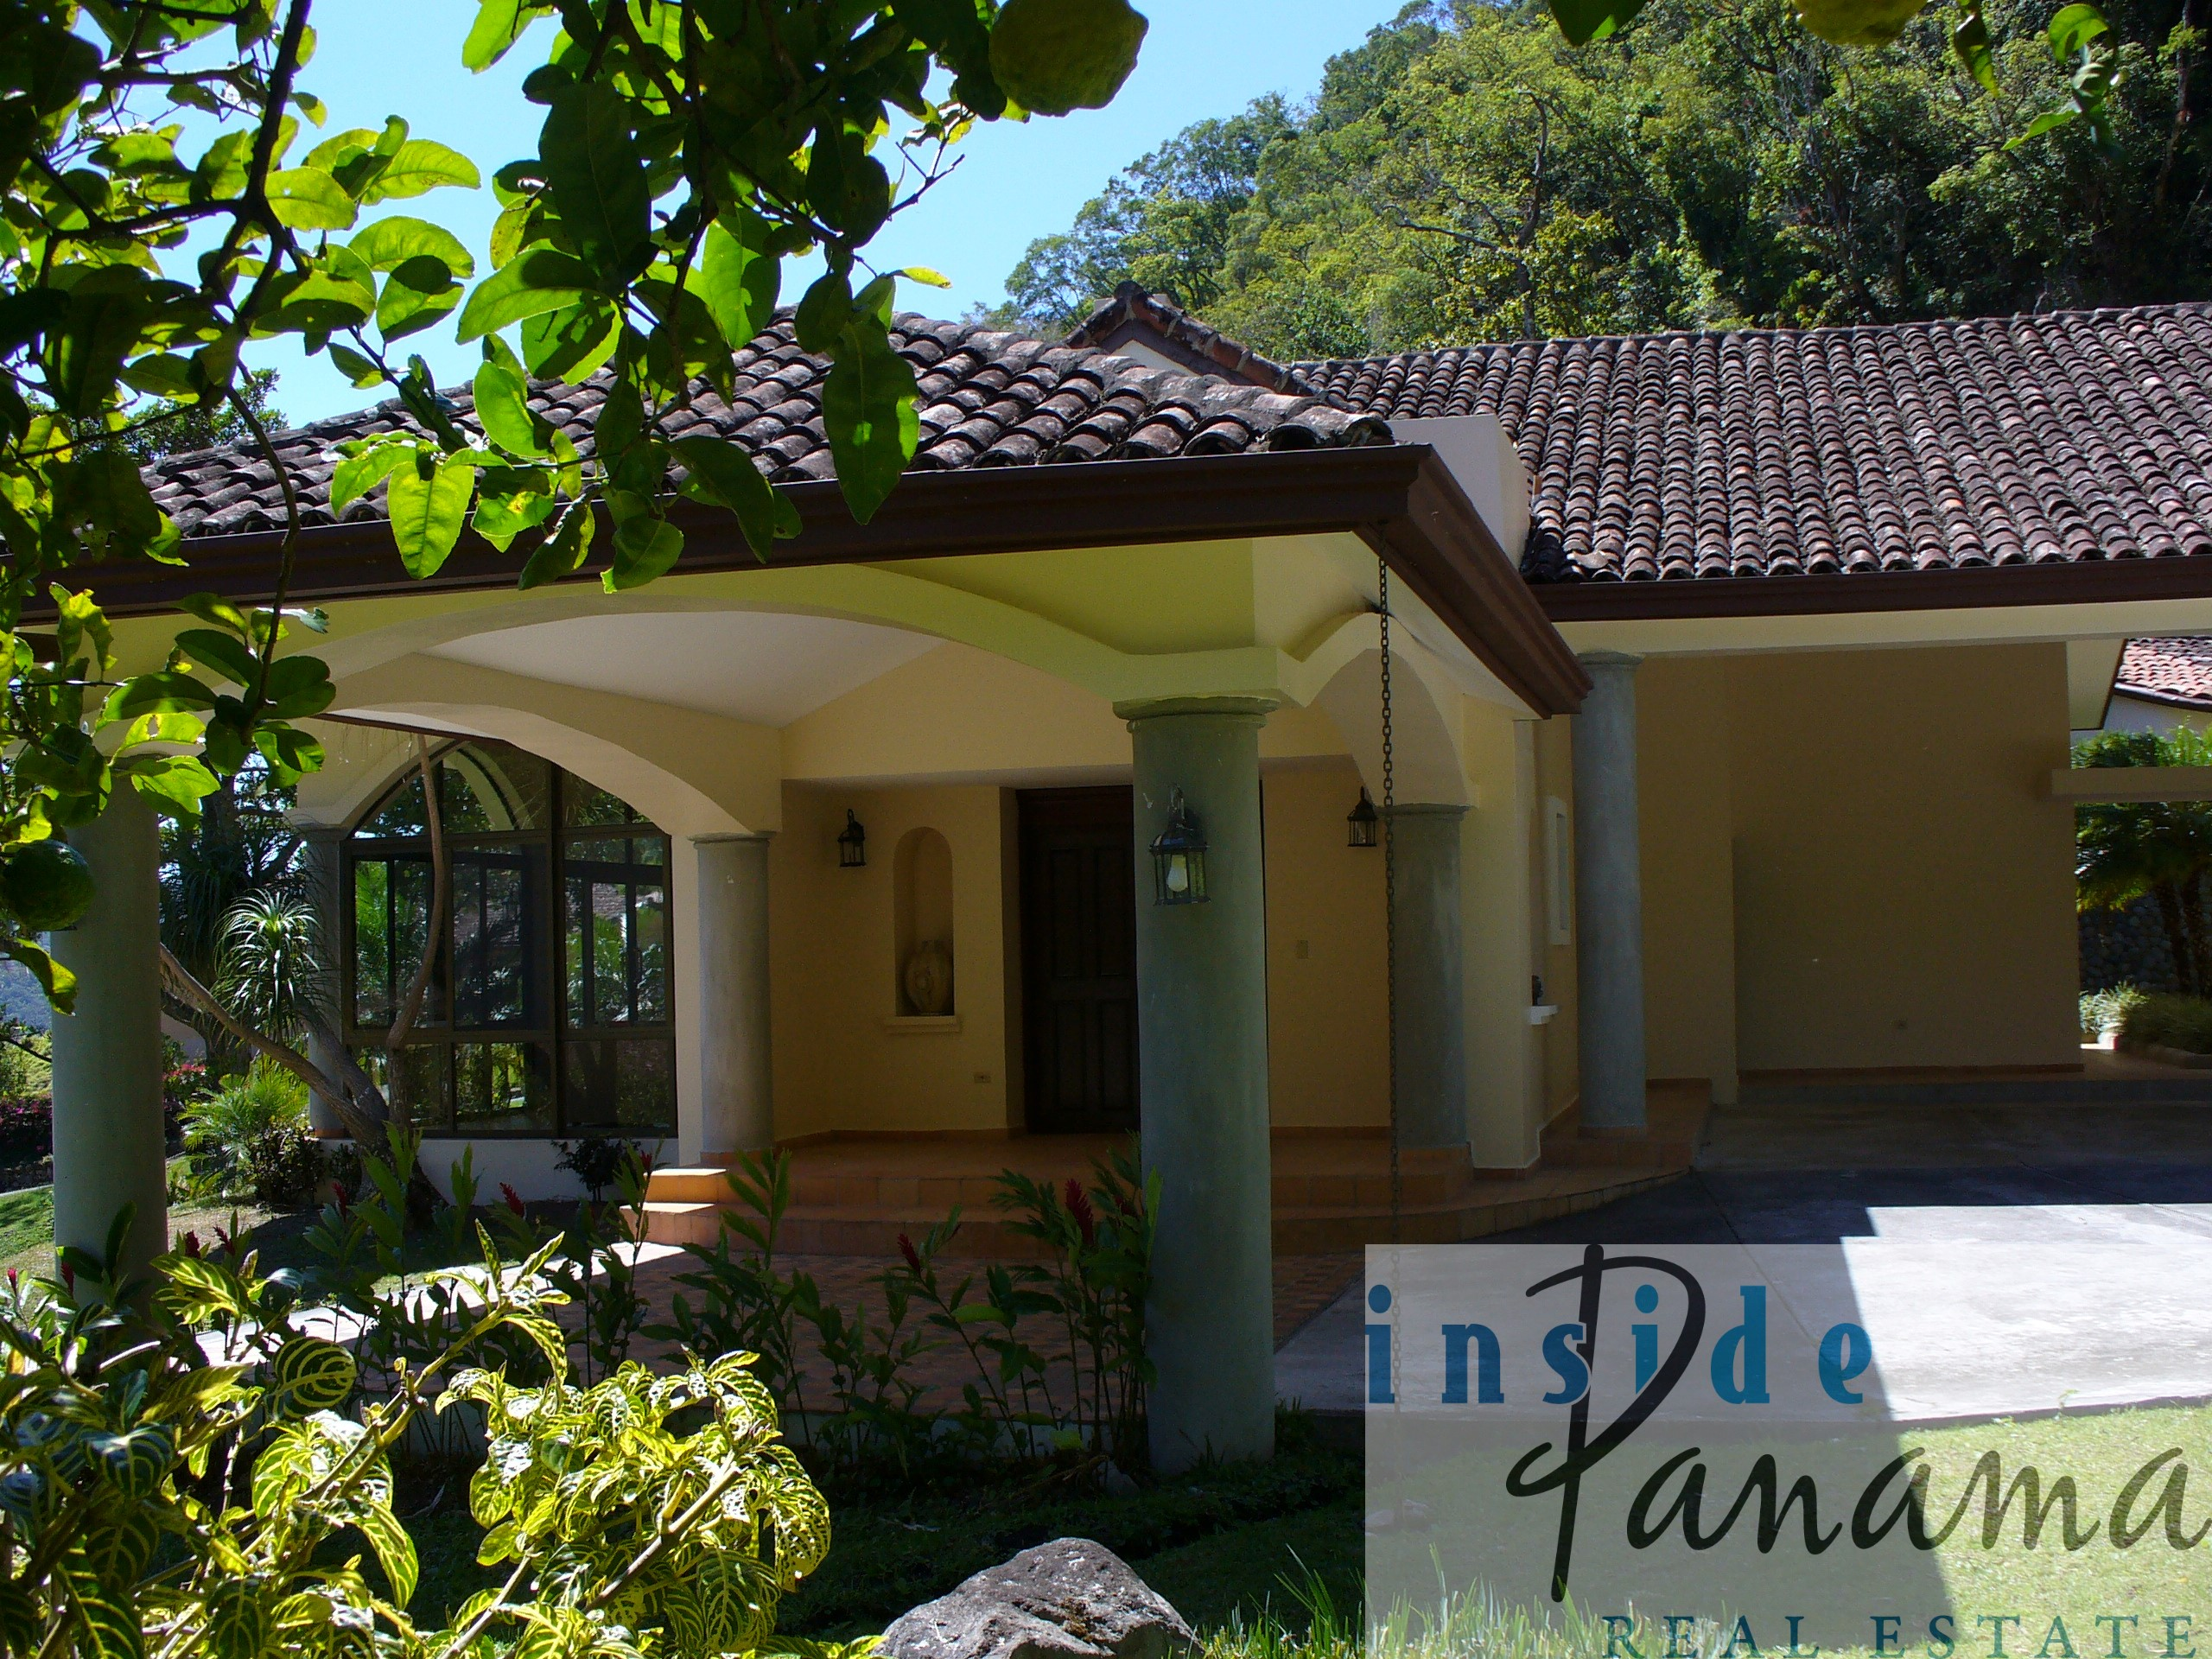 Real Estate in Boquete Panama | For Sale Beautiful Home in ...